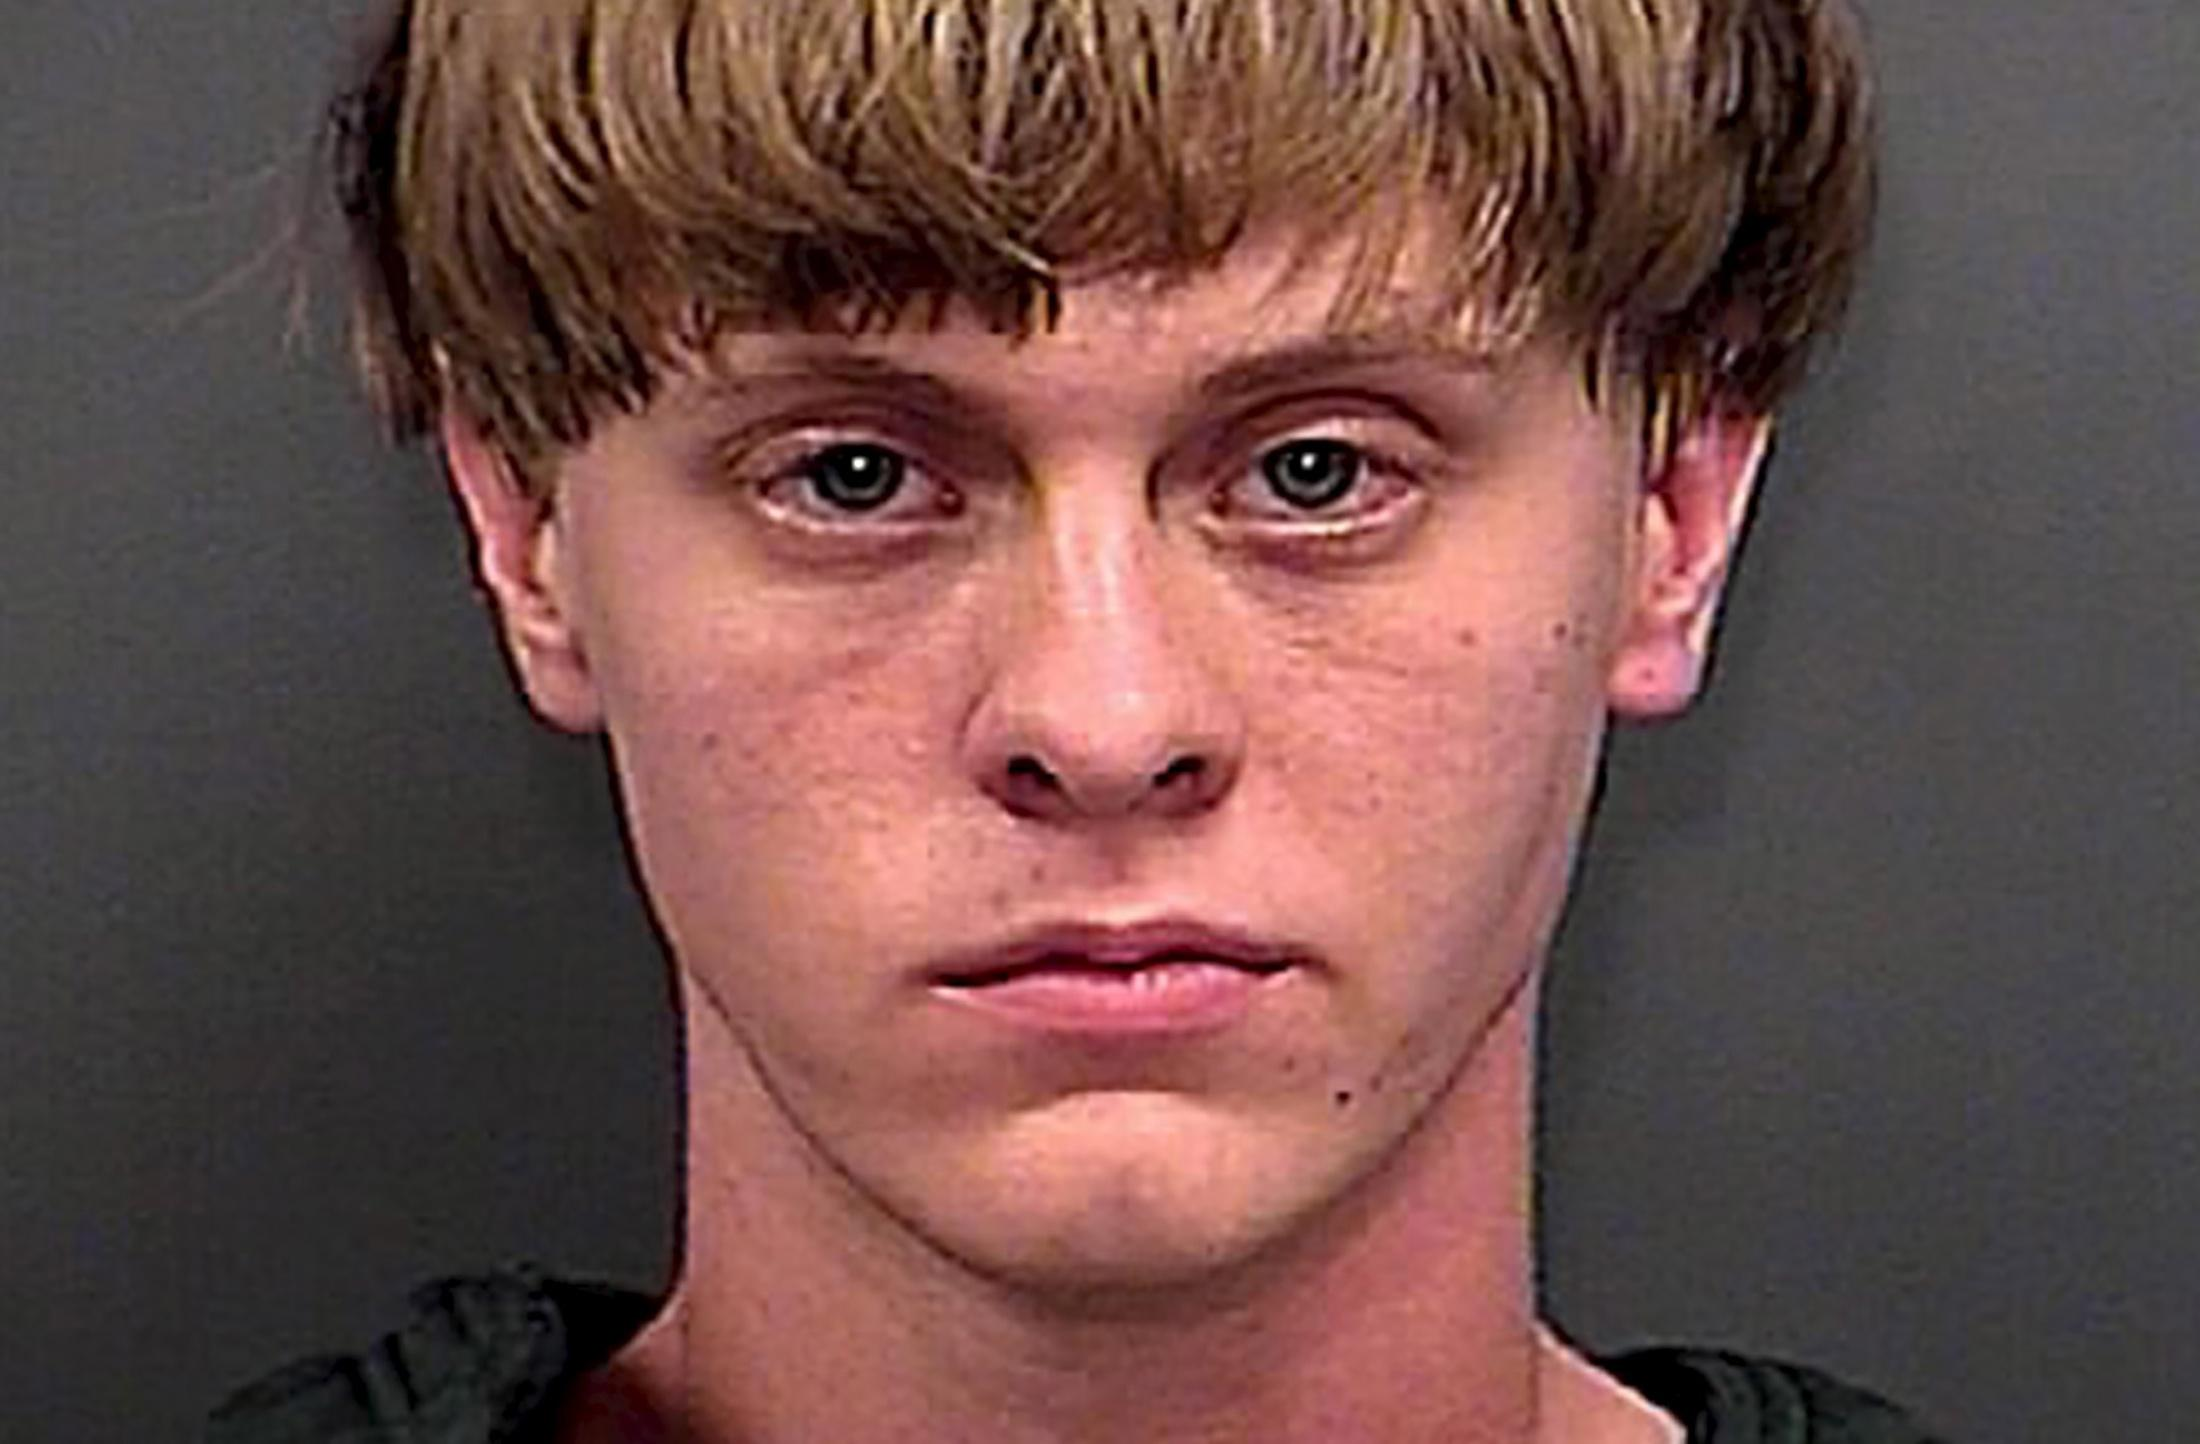 Dylann Roof's sister arrested on weapons charges after alarming Snapchat post